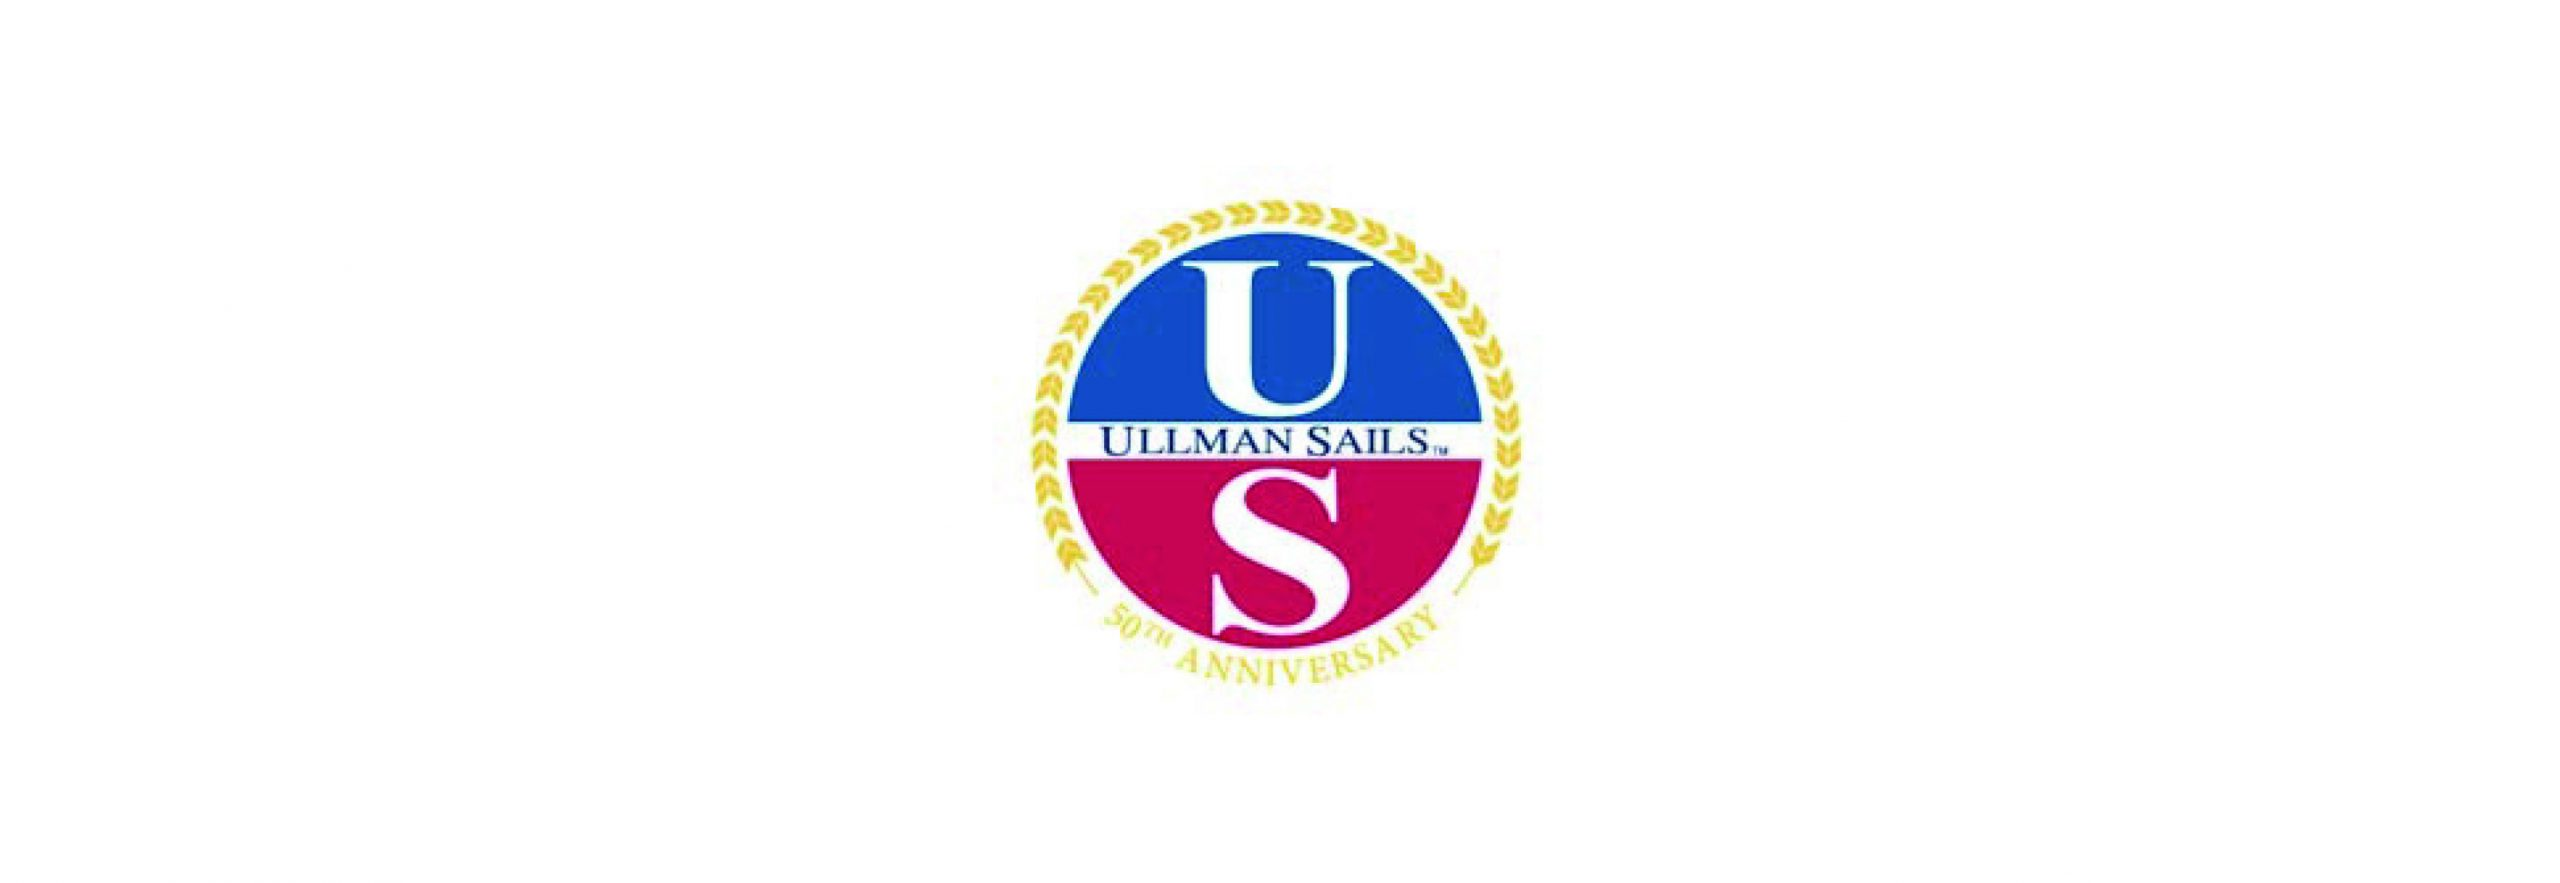 ullman sails japan